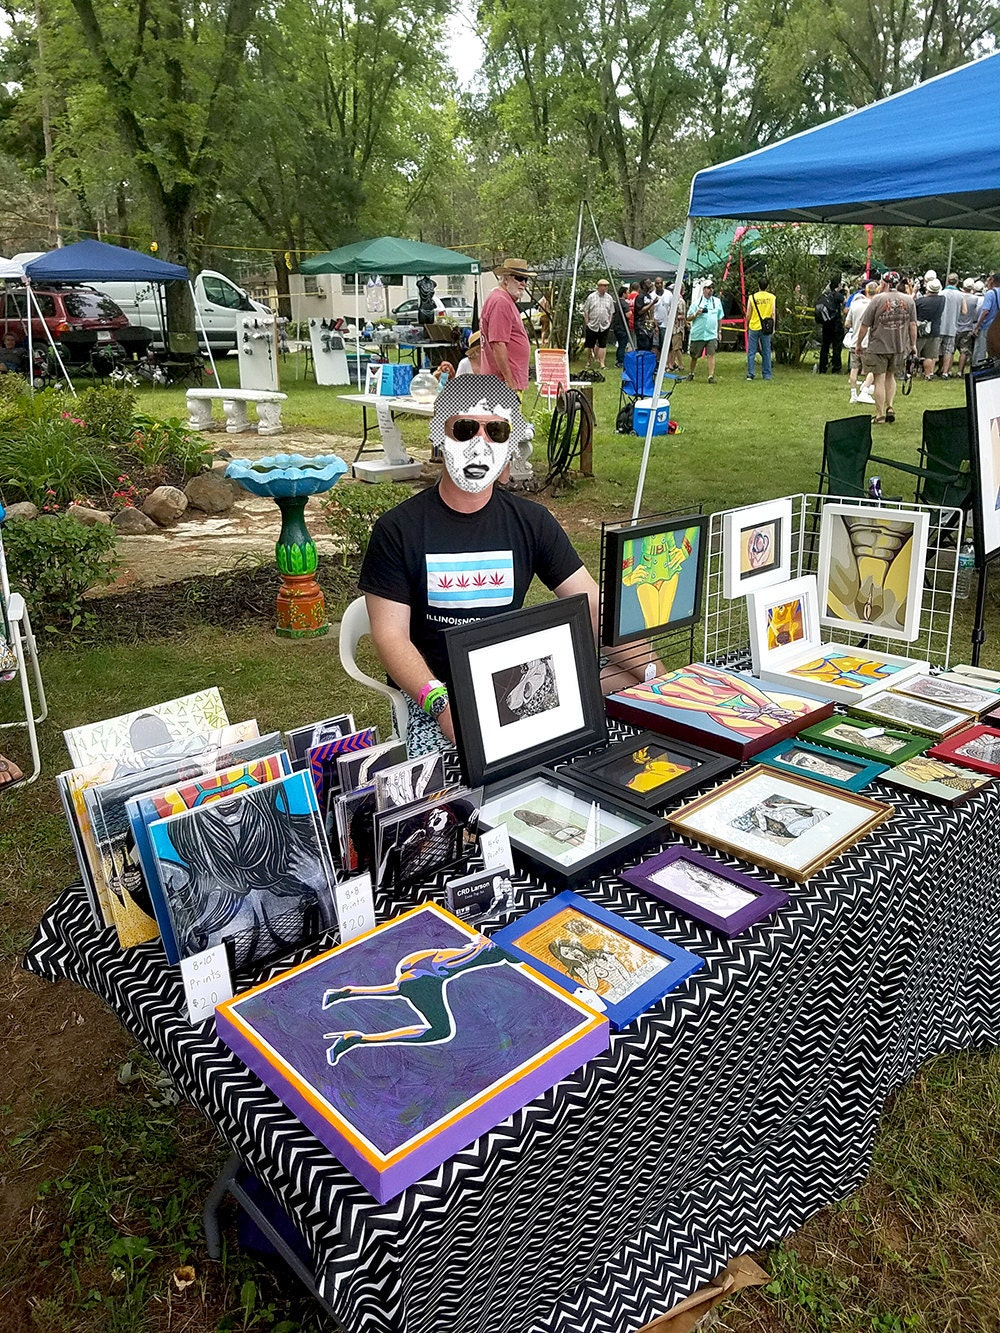 CRD Larson Artist Exhibitor Booth, Nudes A Poppin Festival, July 2017.